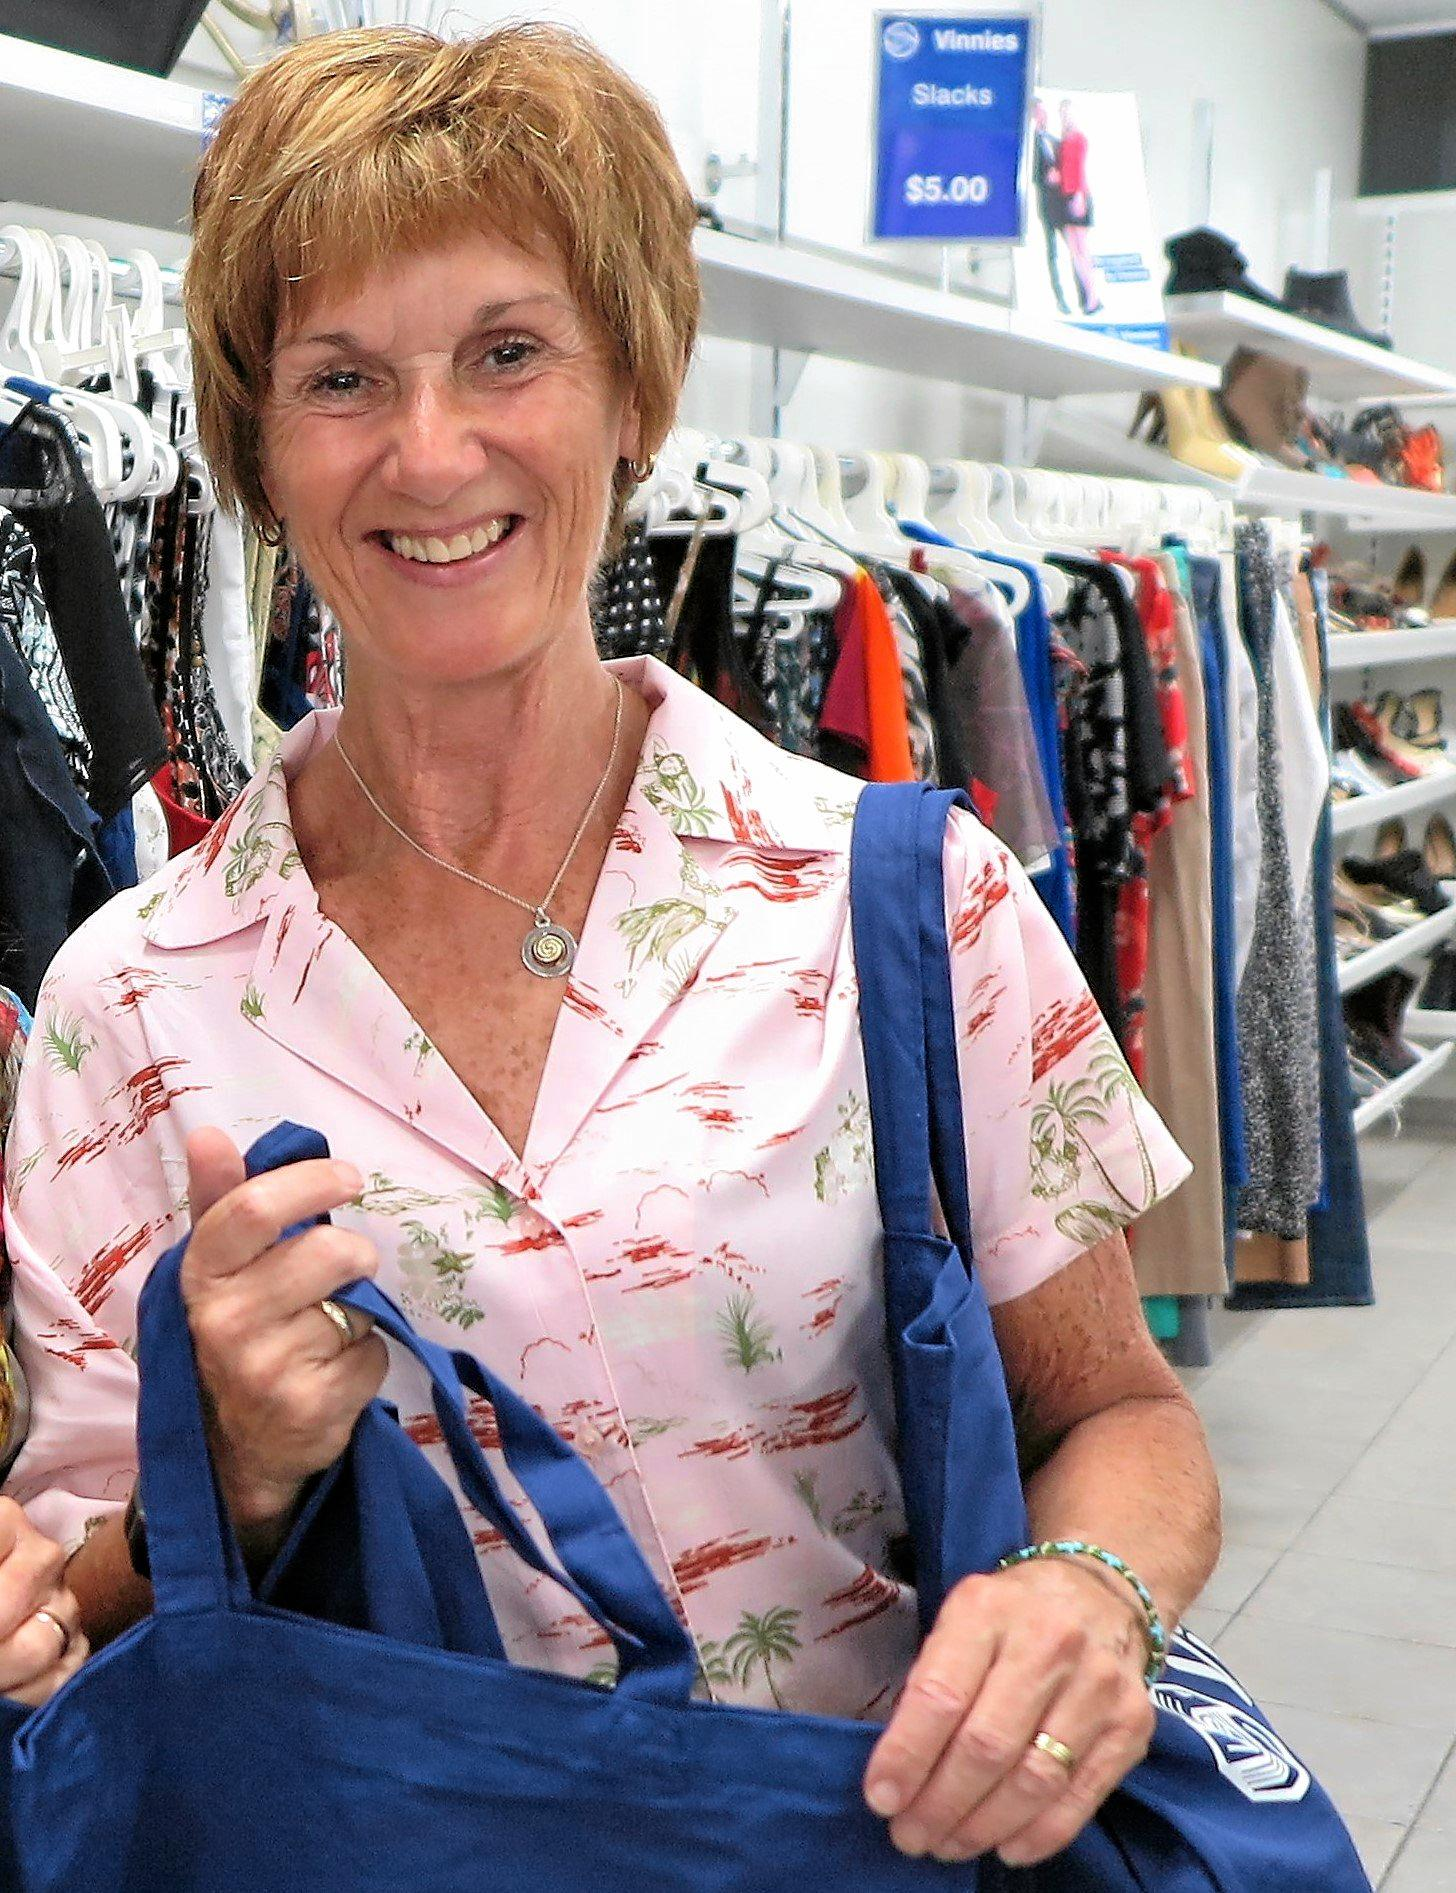 BAG A BARGAIN: Yvonne Wynen from Vinnies is encouraging shoppers to bring their own bags or purchase a Vinnie's cloth bag.